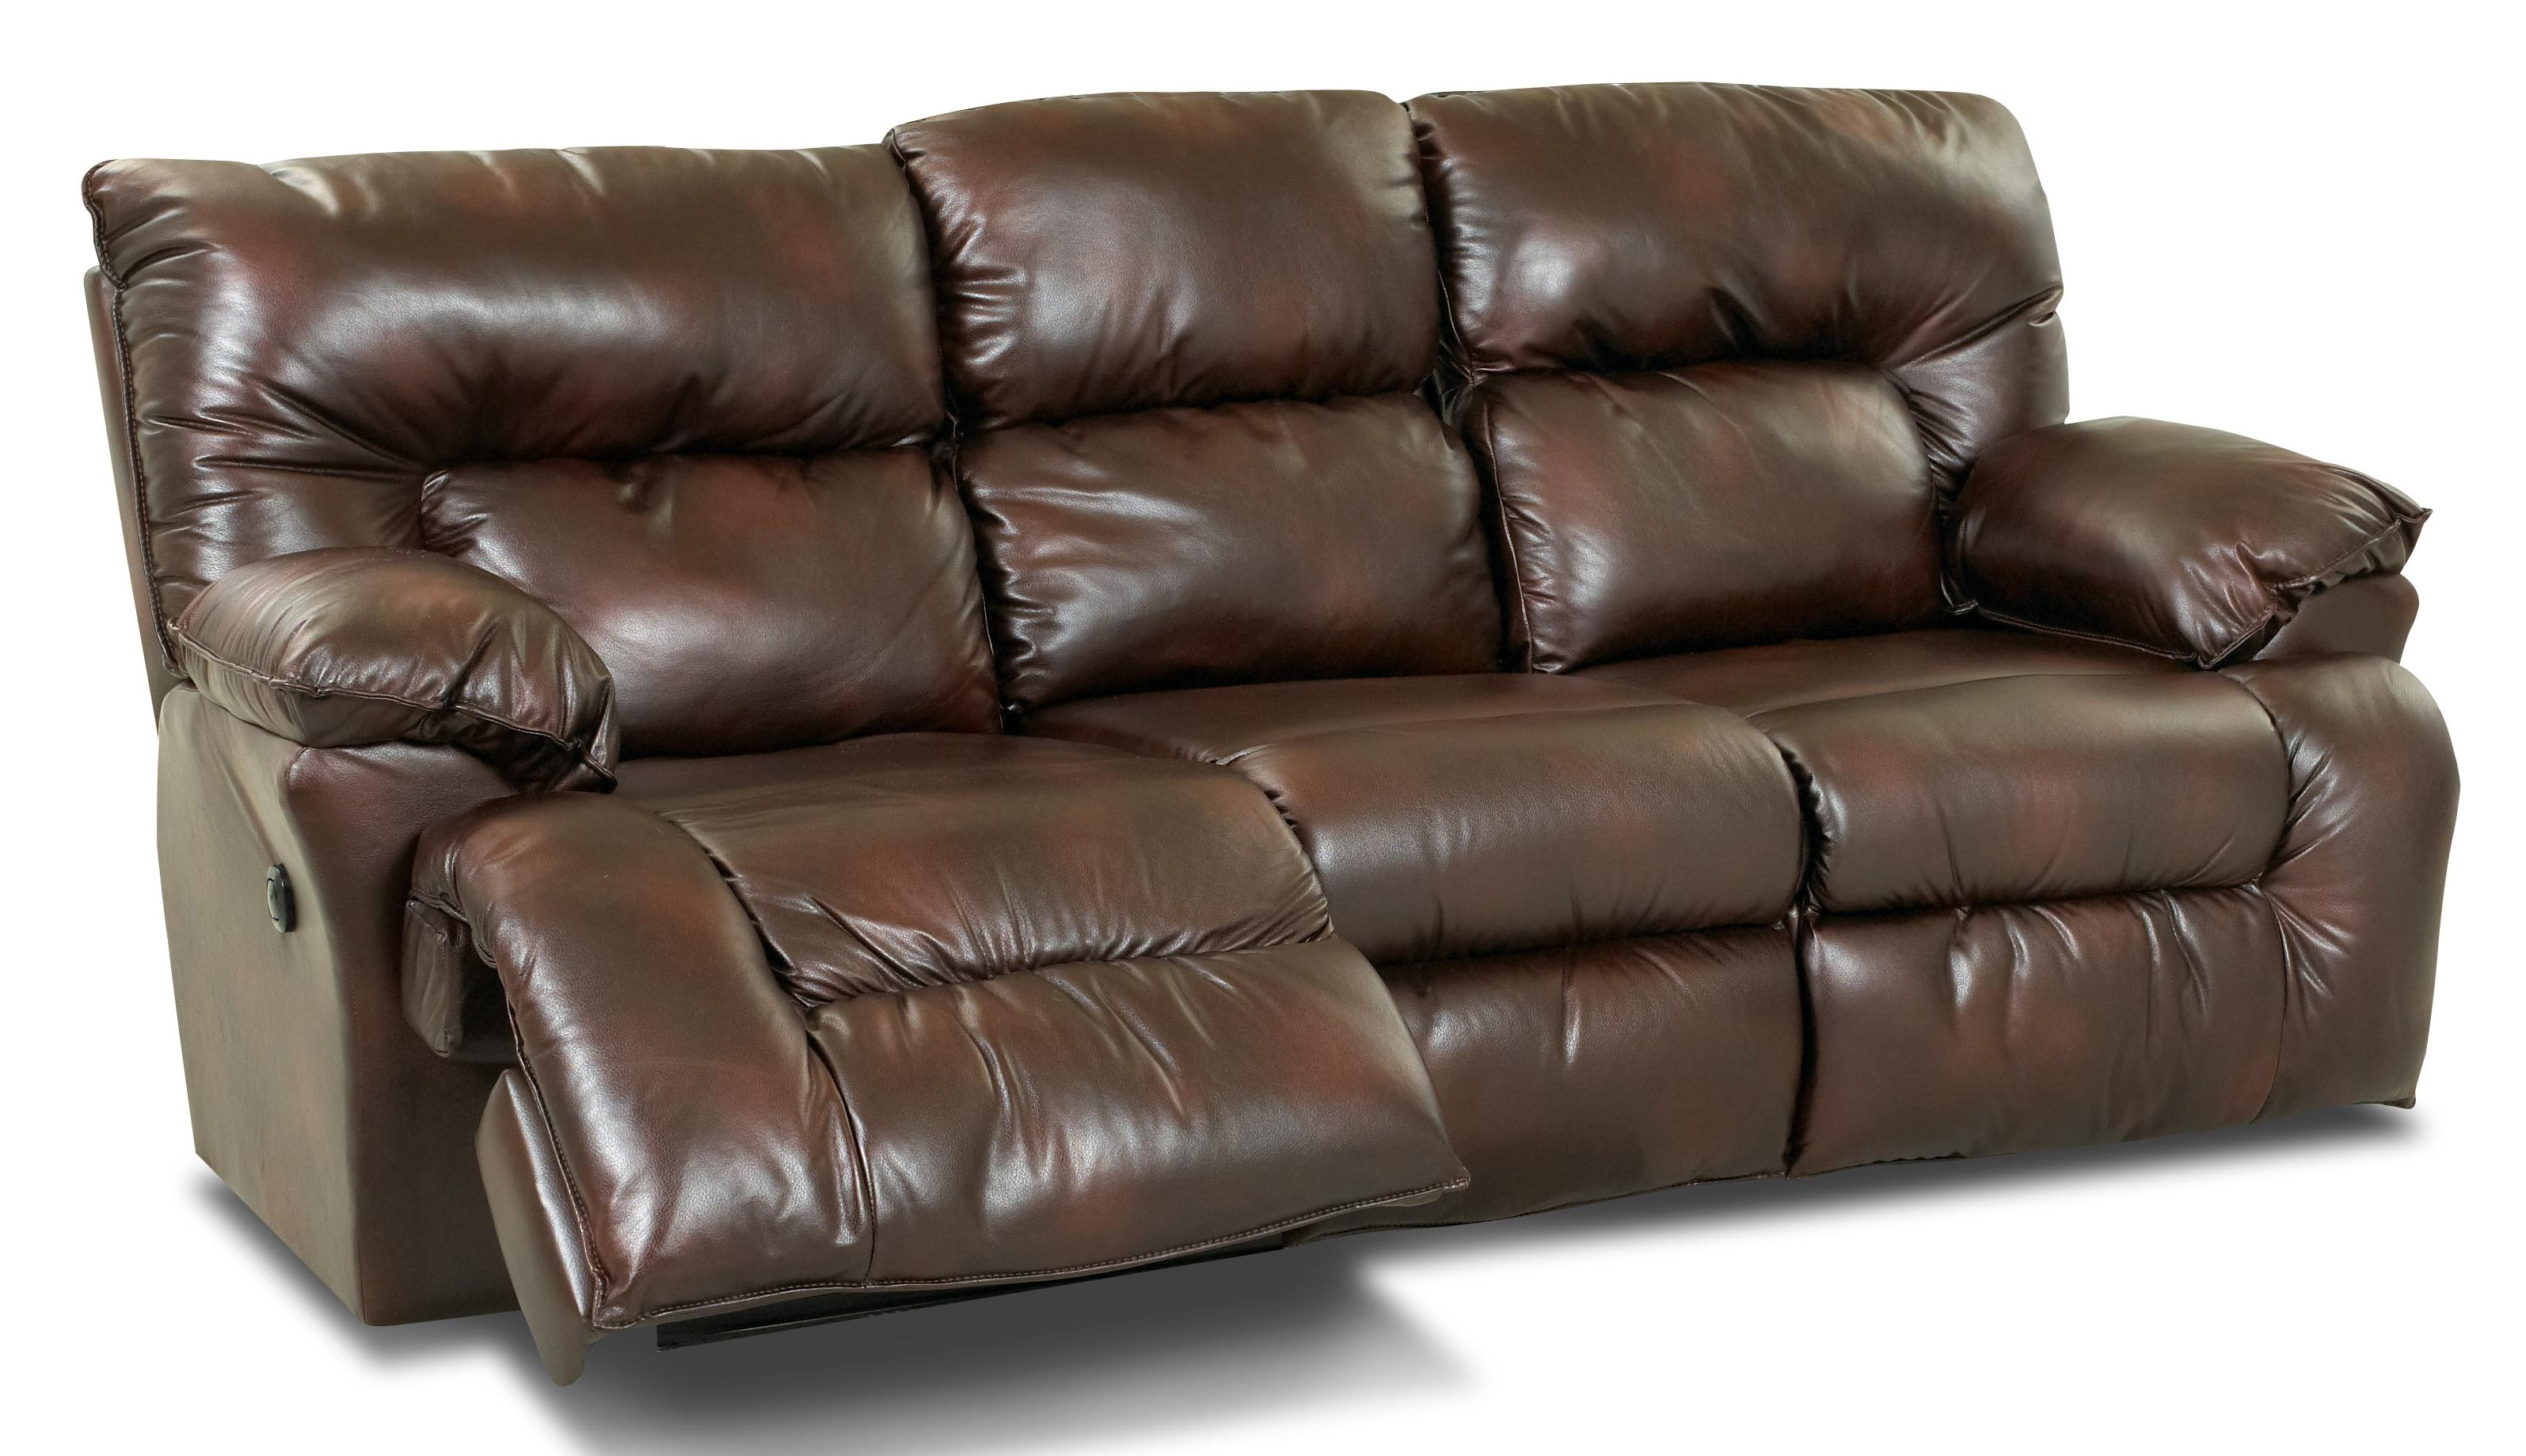 Power Reclining Sofa with Drop Down Table and Cupholders by